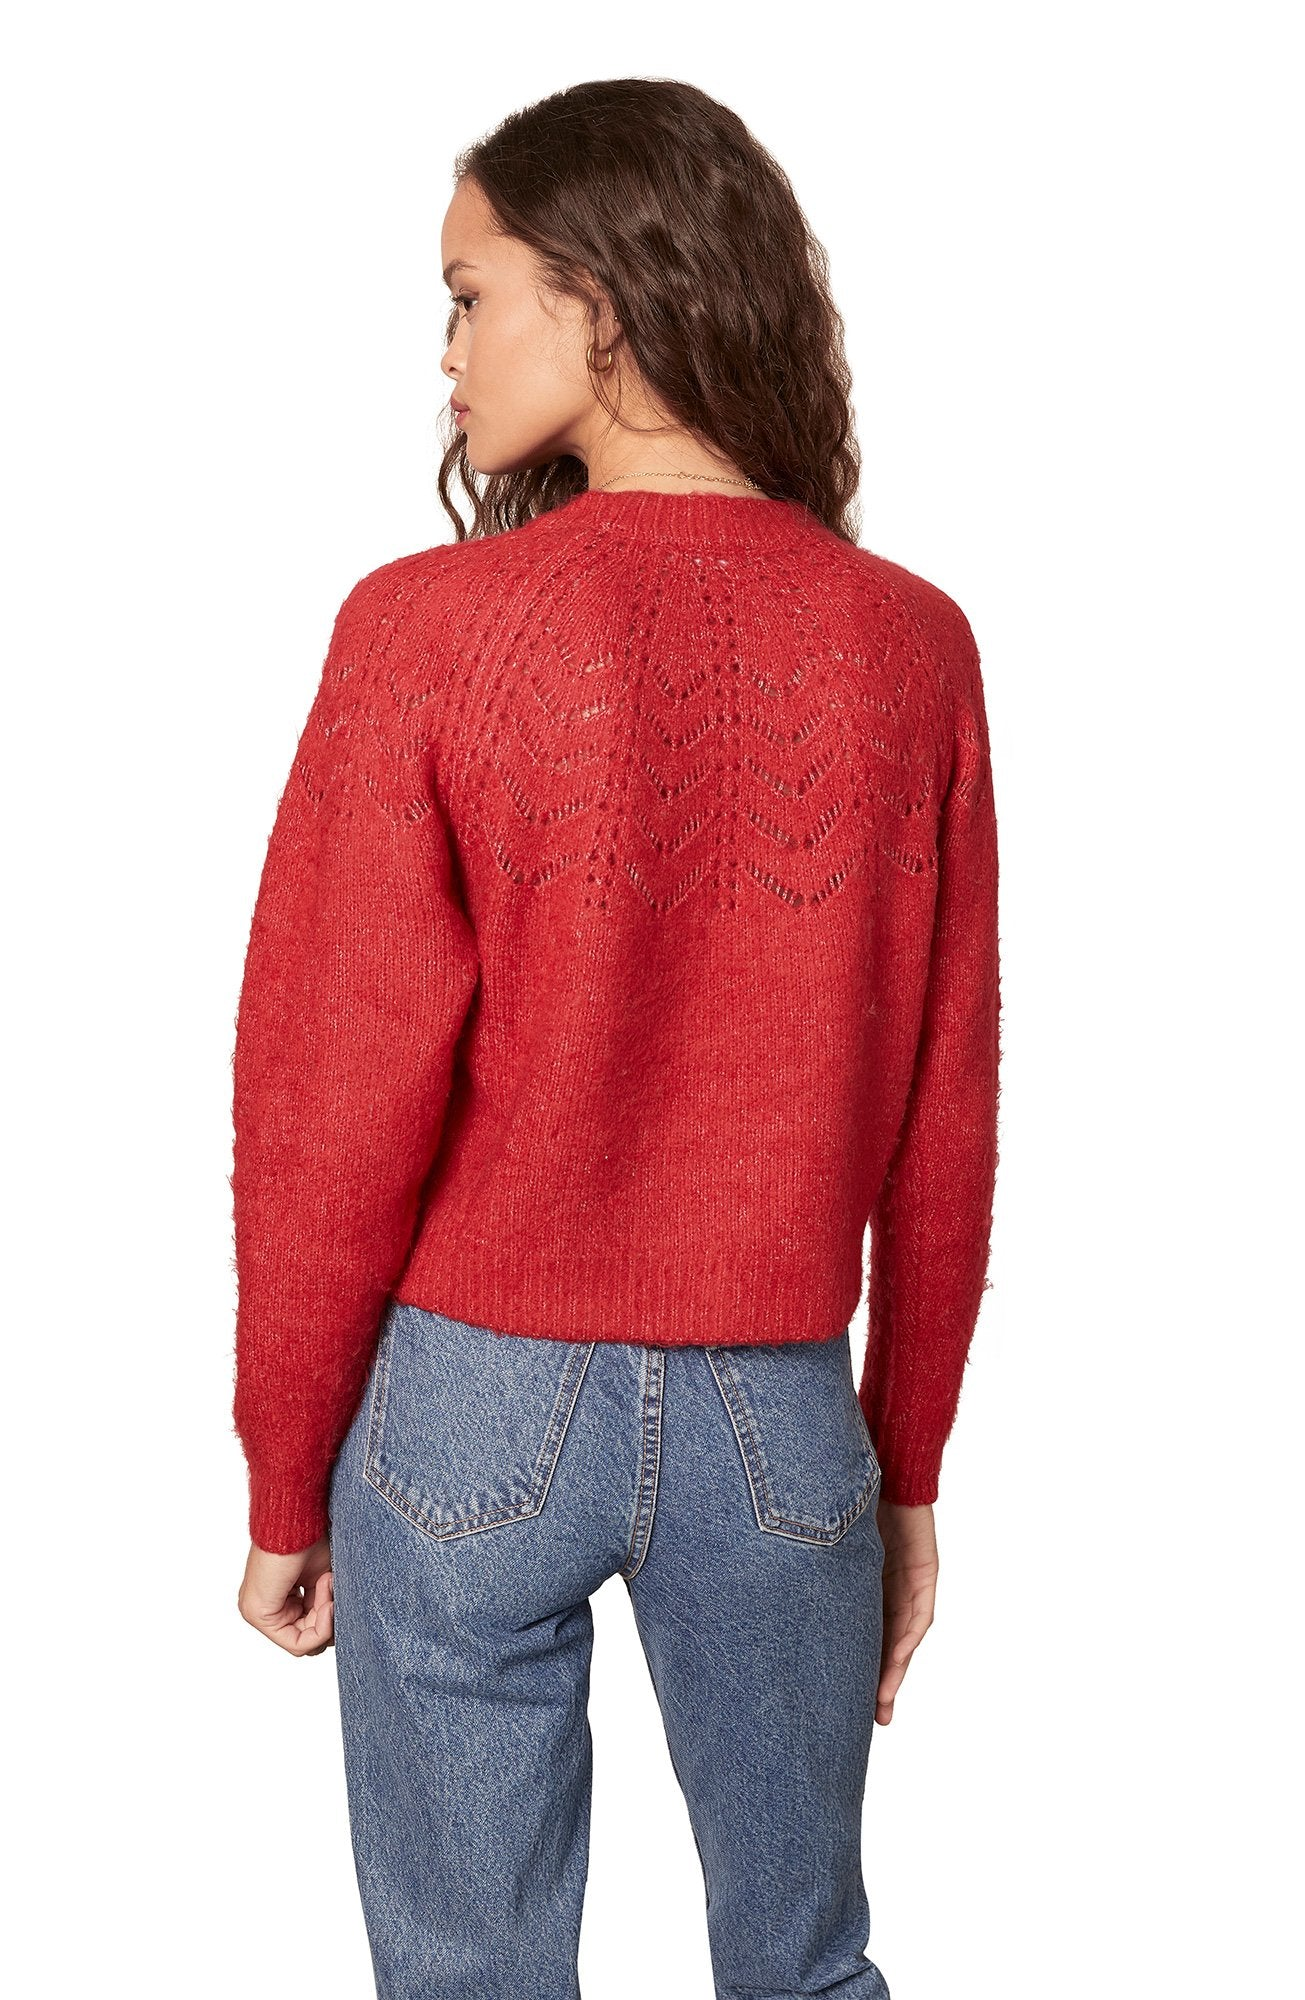 CRIMSON RED SWEATER